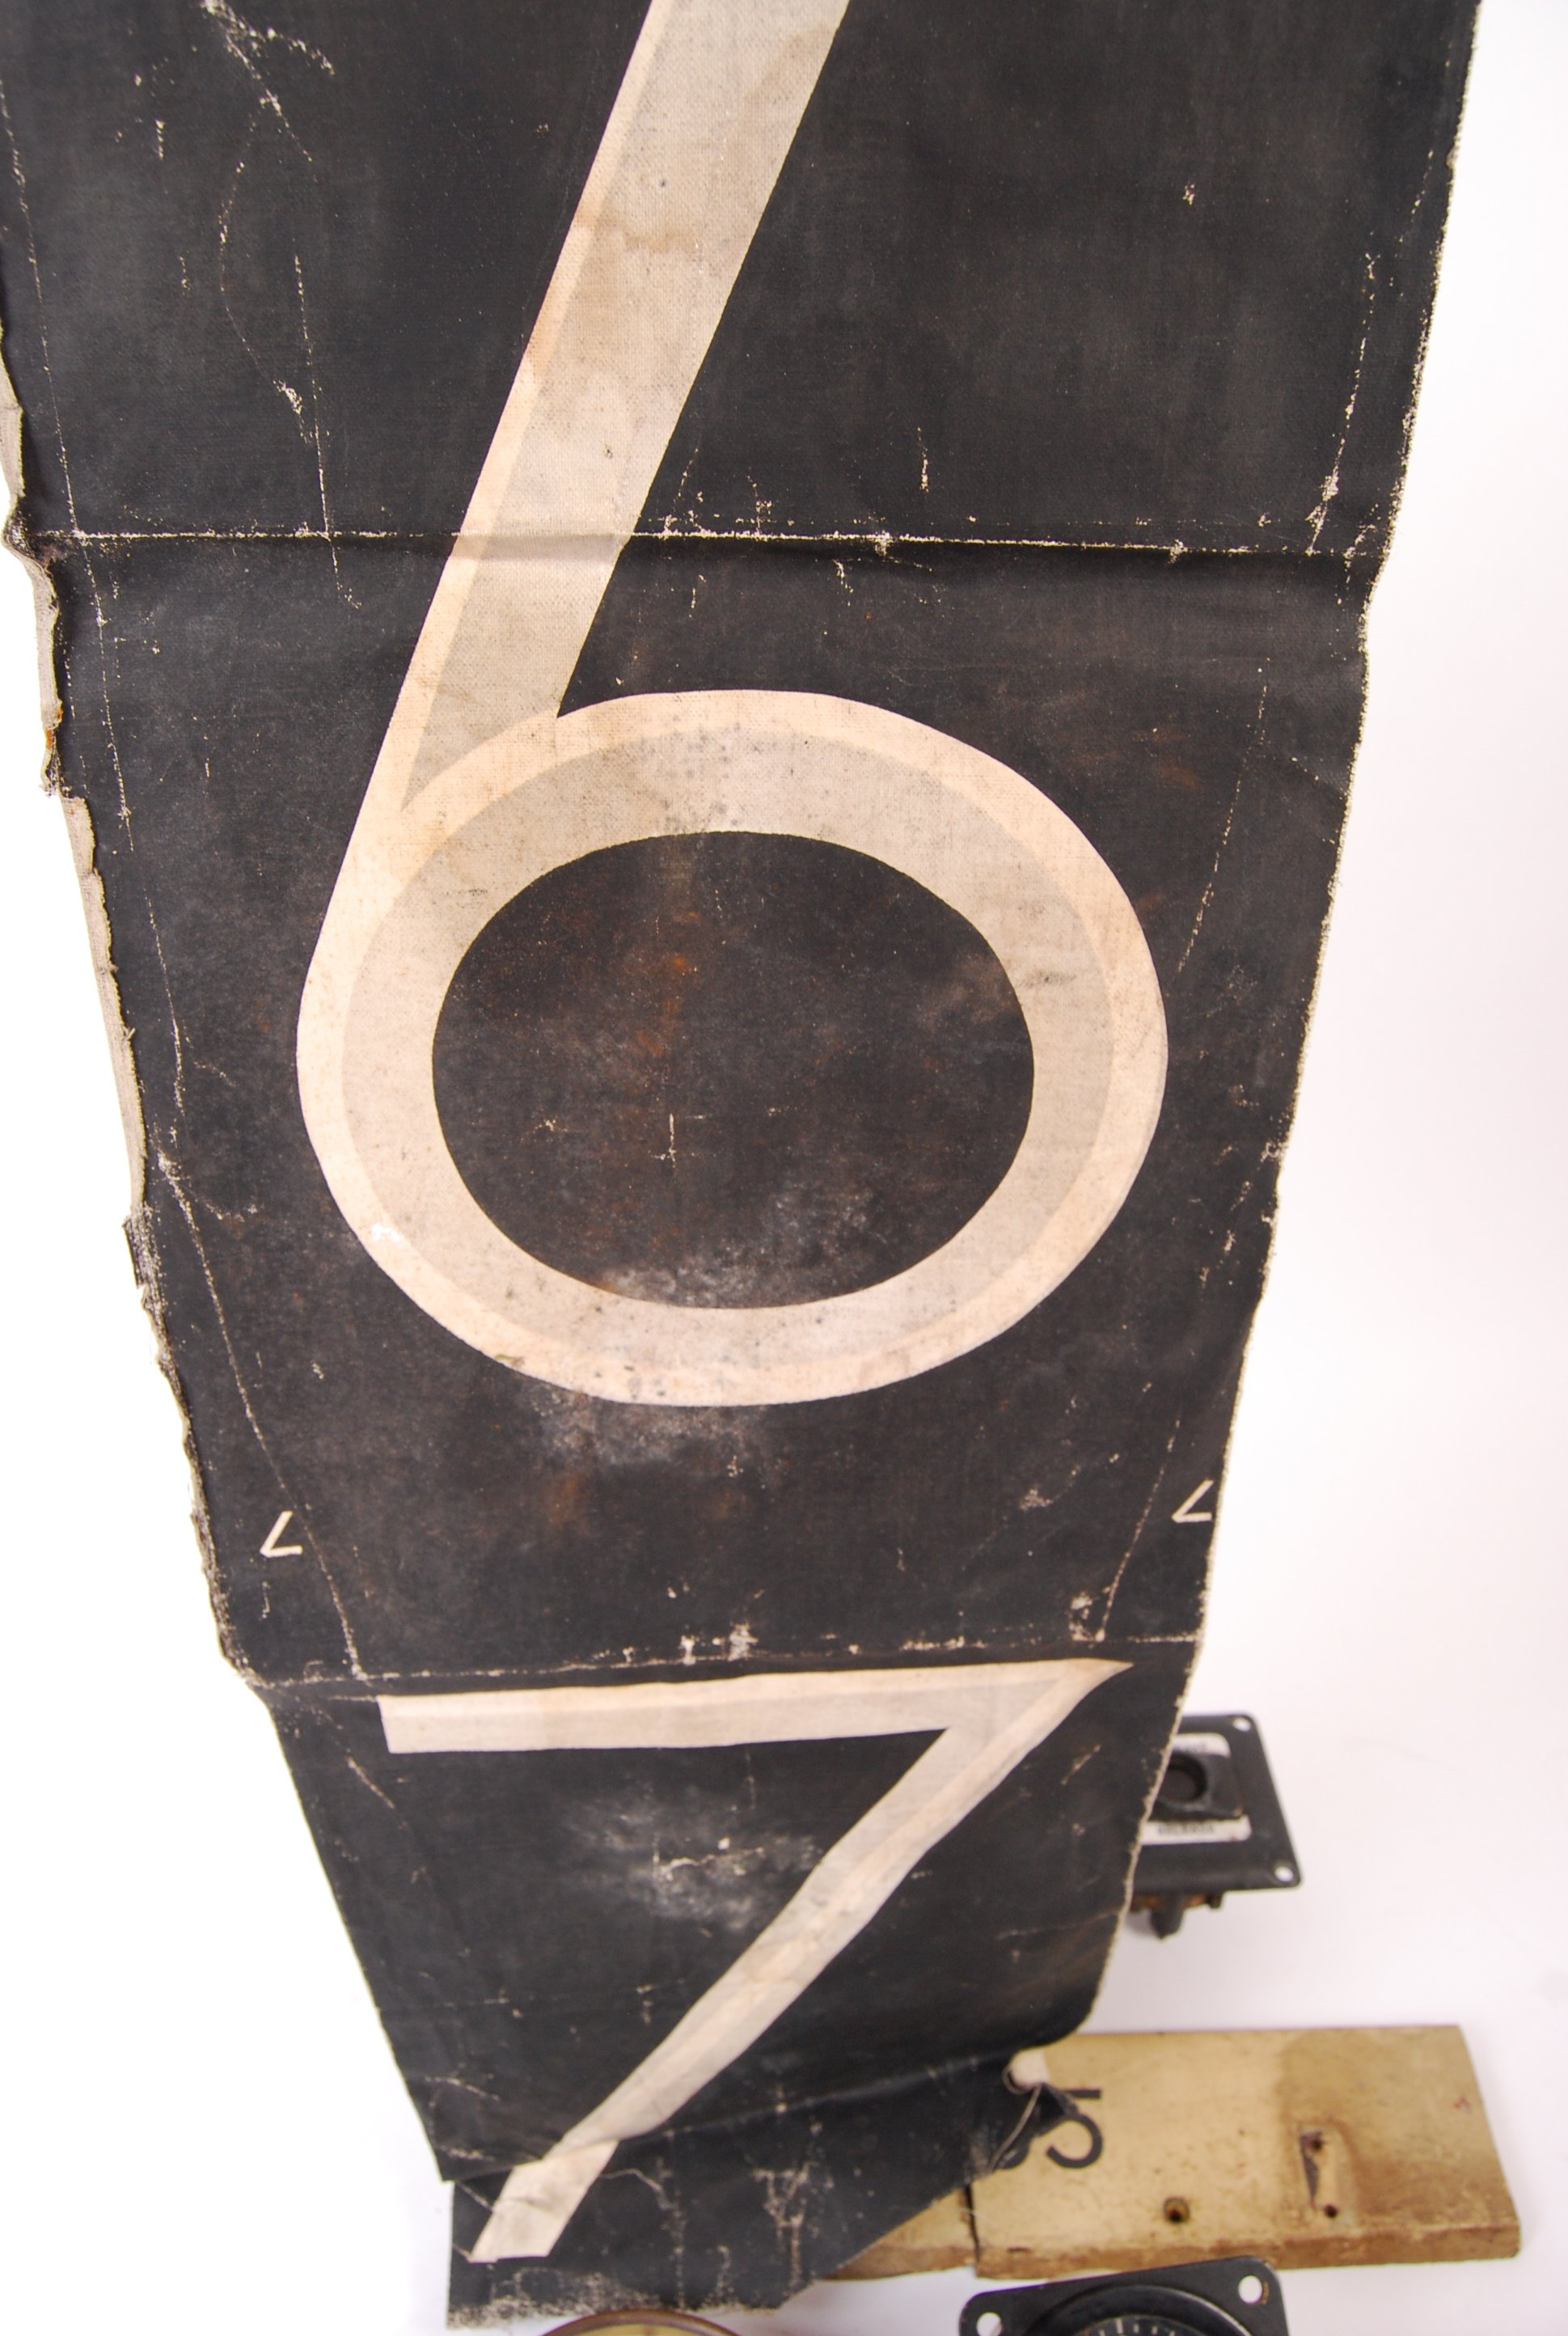 RARE COLLECTION OF RAILWAYANA - REMOVED FROM D7055 HYMEK DIESEL LOCO - Image 7 of 8